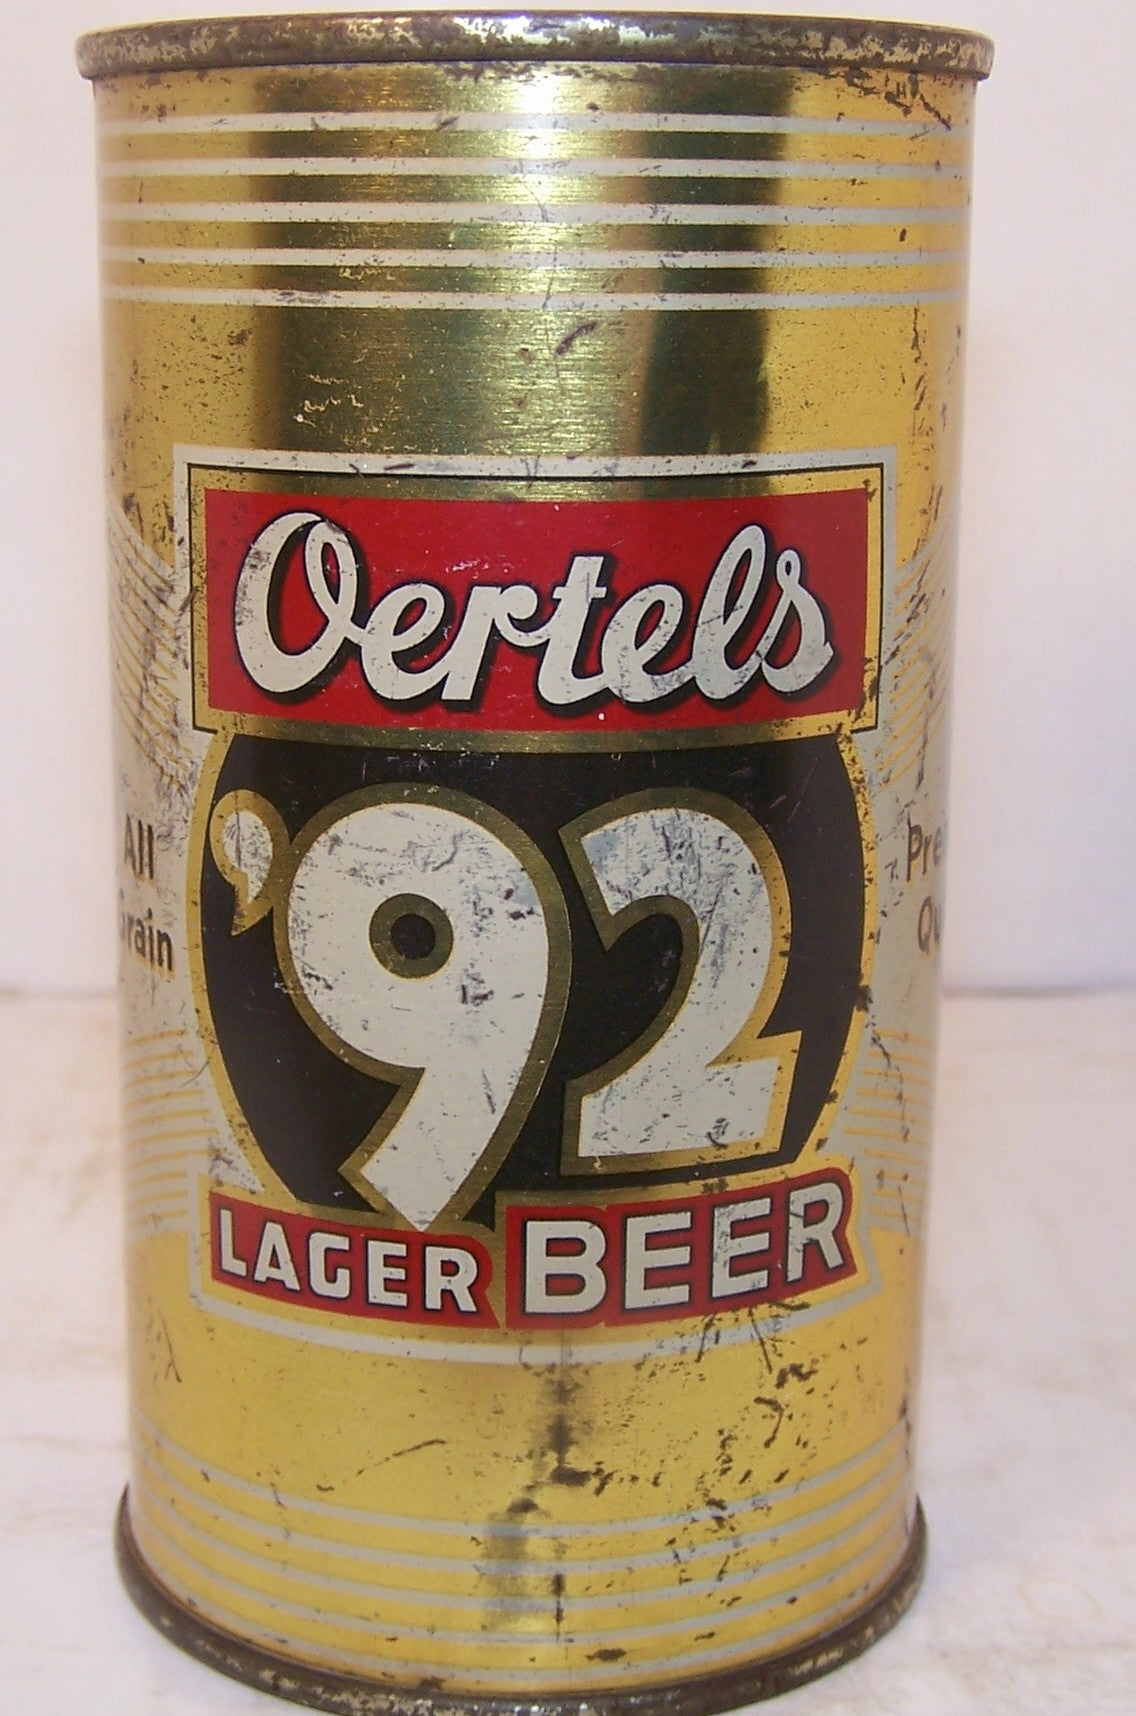 Oertel's 92 Lager Beer, USBC 104-2, Grade 1-/2+ Sold on 3/18/15